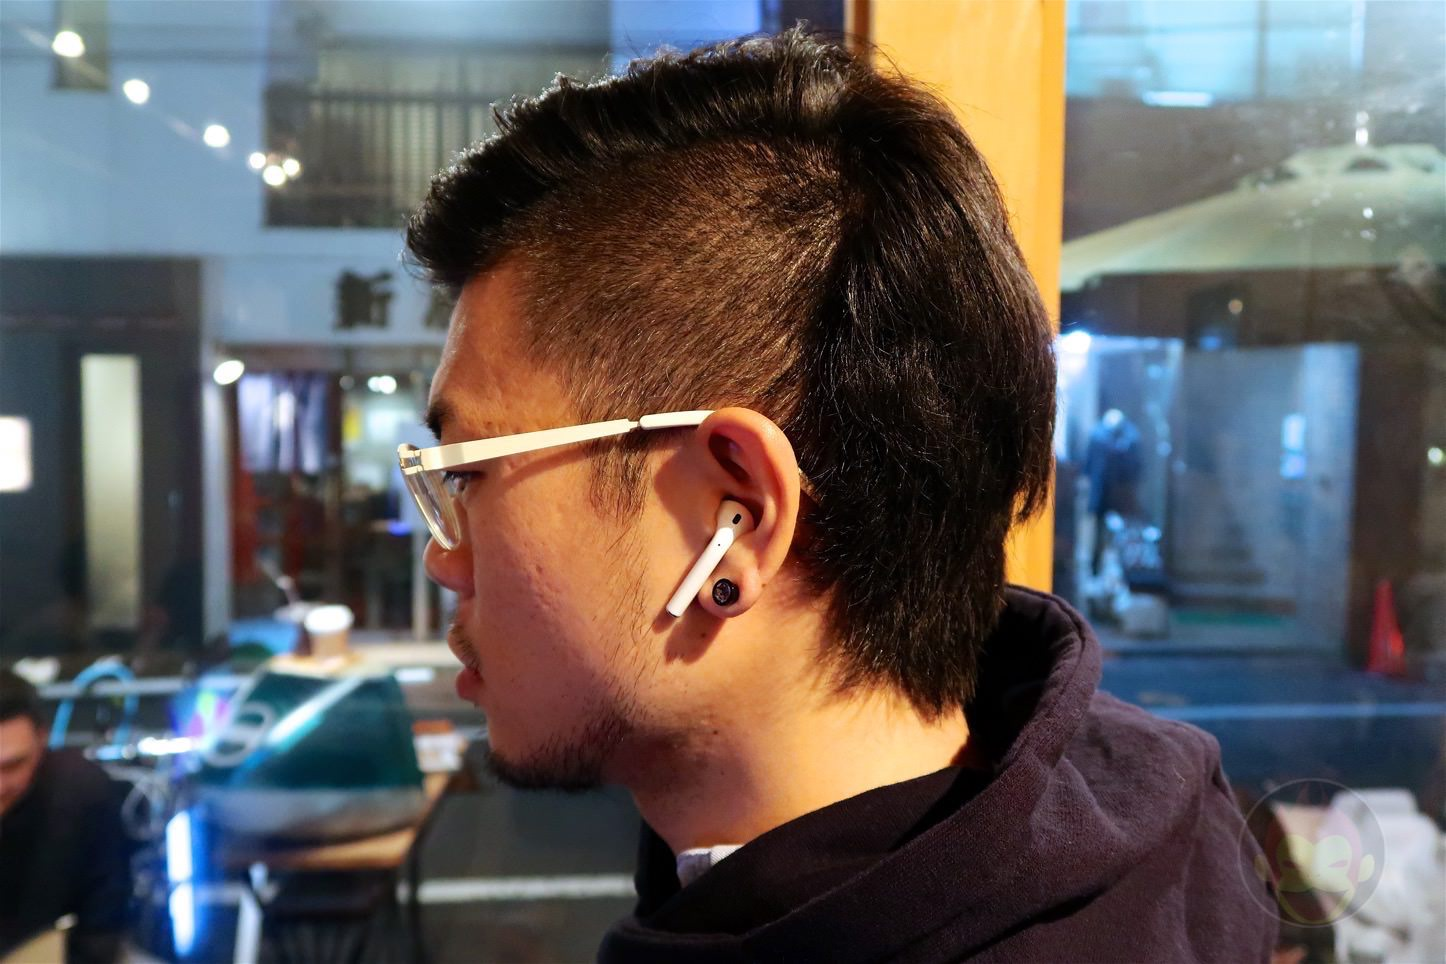 Wearing the Apple AirPods